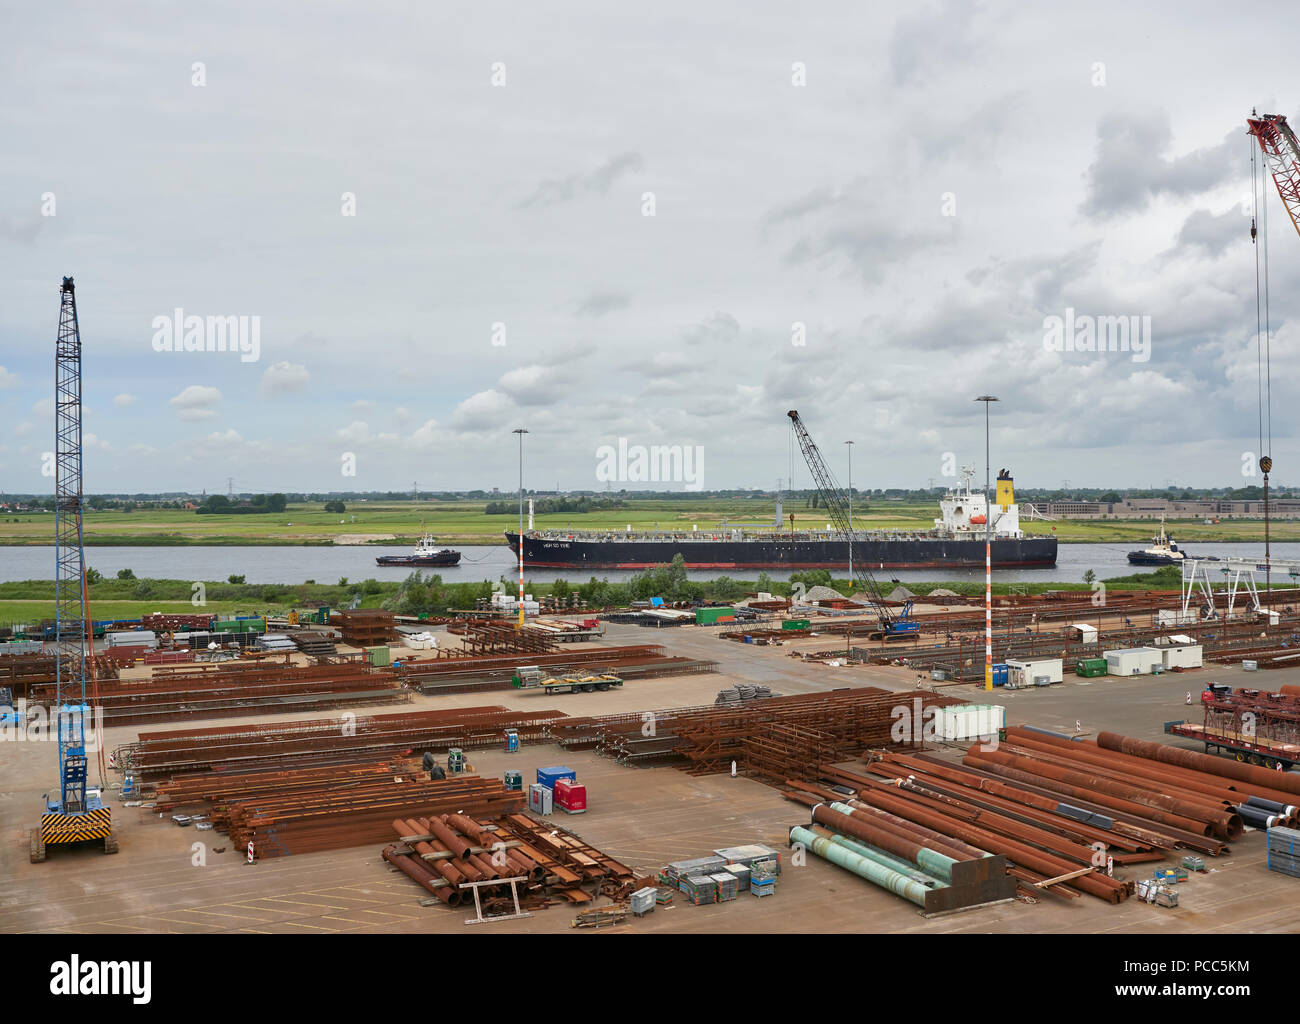 The High SD Yihe, a General Purpose Cargo Vessel being moved into the North Sea Canal by 2 Tugs at Den Haag, Amsterdam, Netherlands. - Stock Image